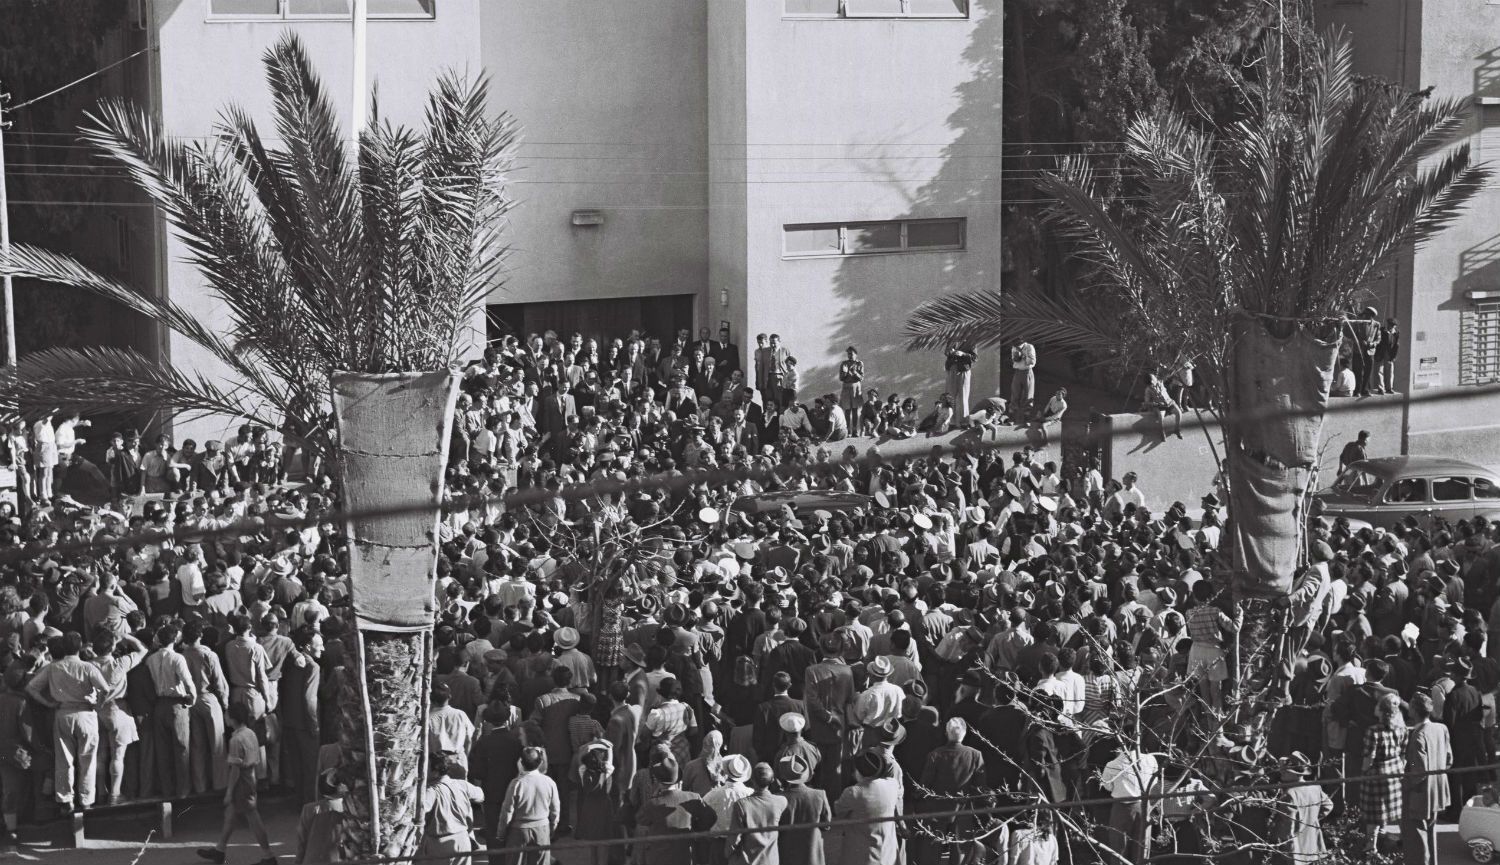 Crowds await Israel's Declaration of Independence, written with the help of an American Jew. Independence Hall/Beit Haatzmaut Museum.